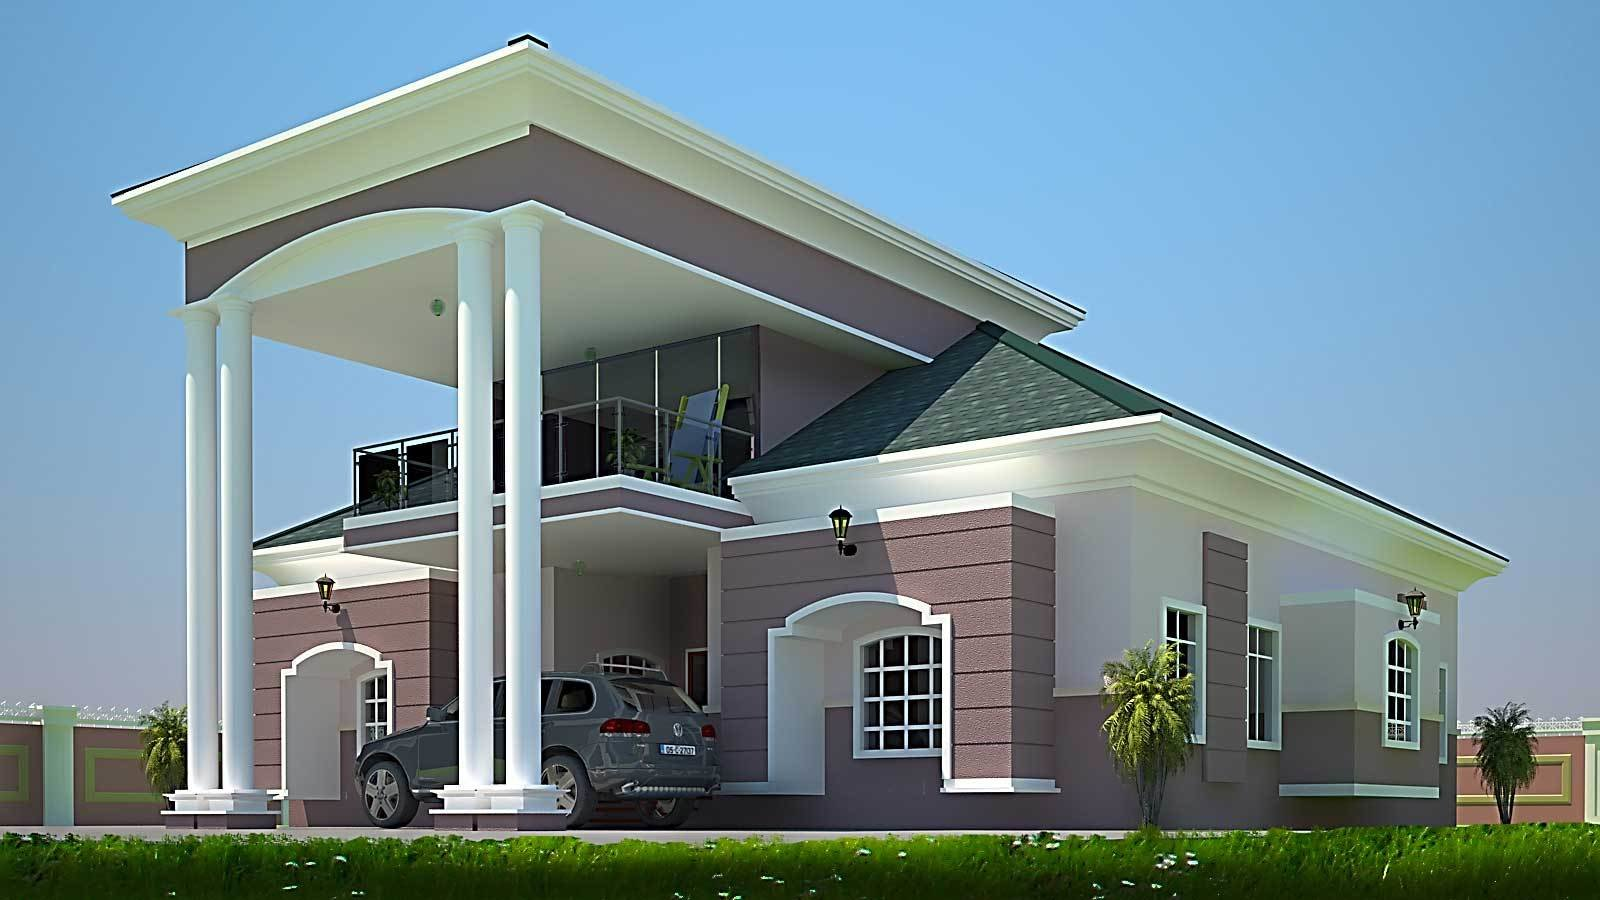 Best House Plans Ghana Fatak 4 Bedroom House Plan In Ghana With Pictures